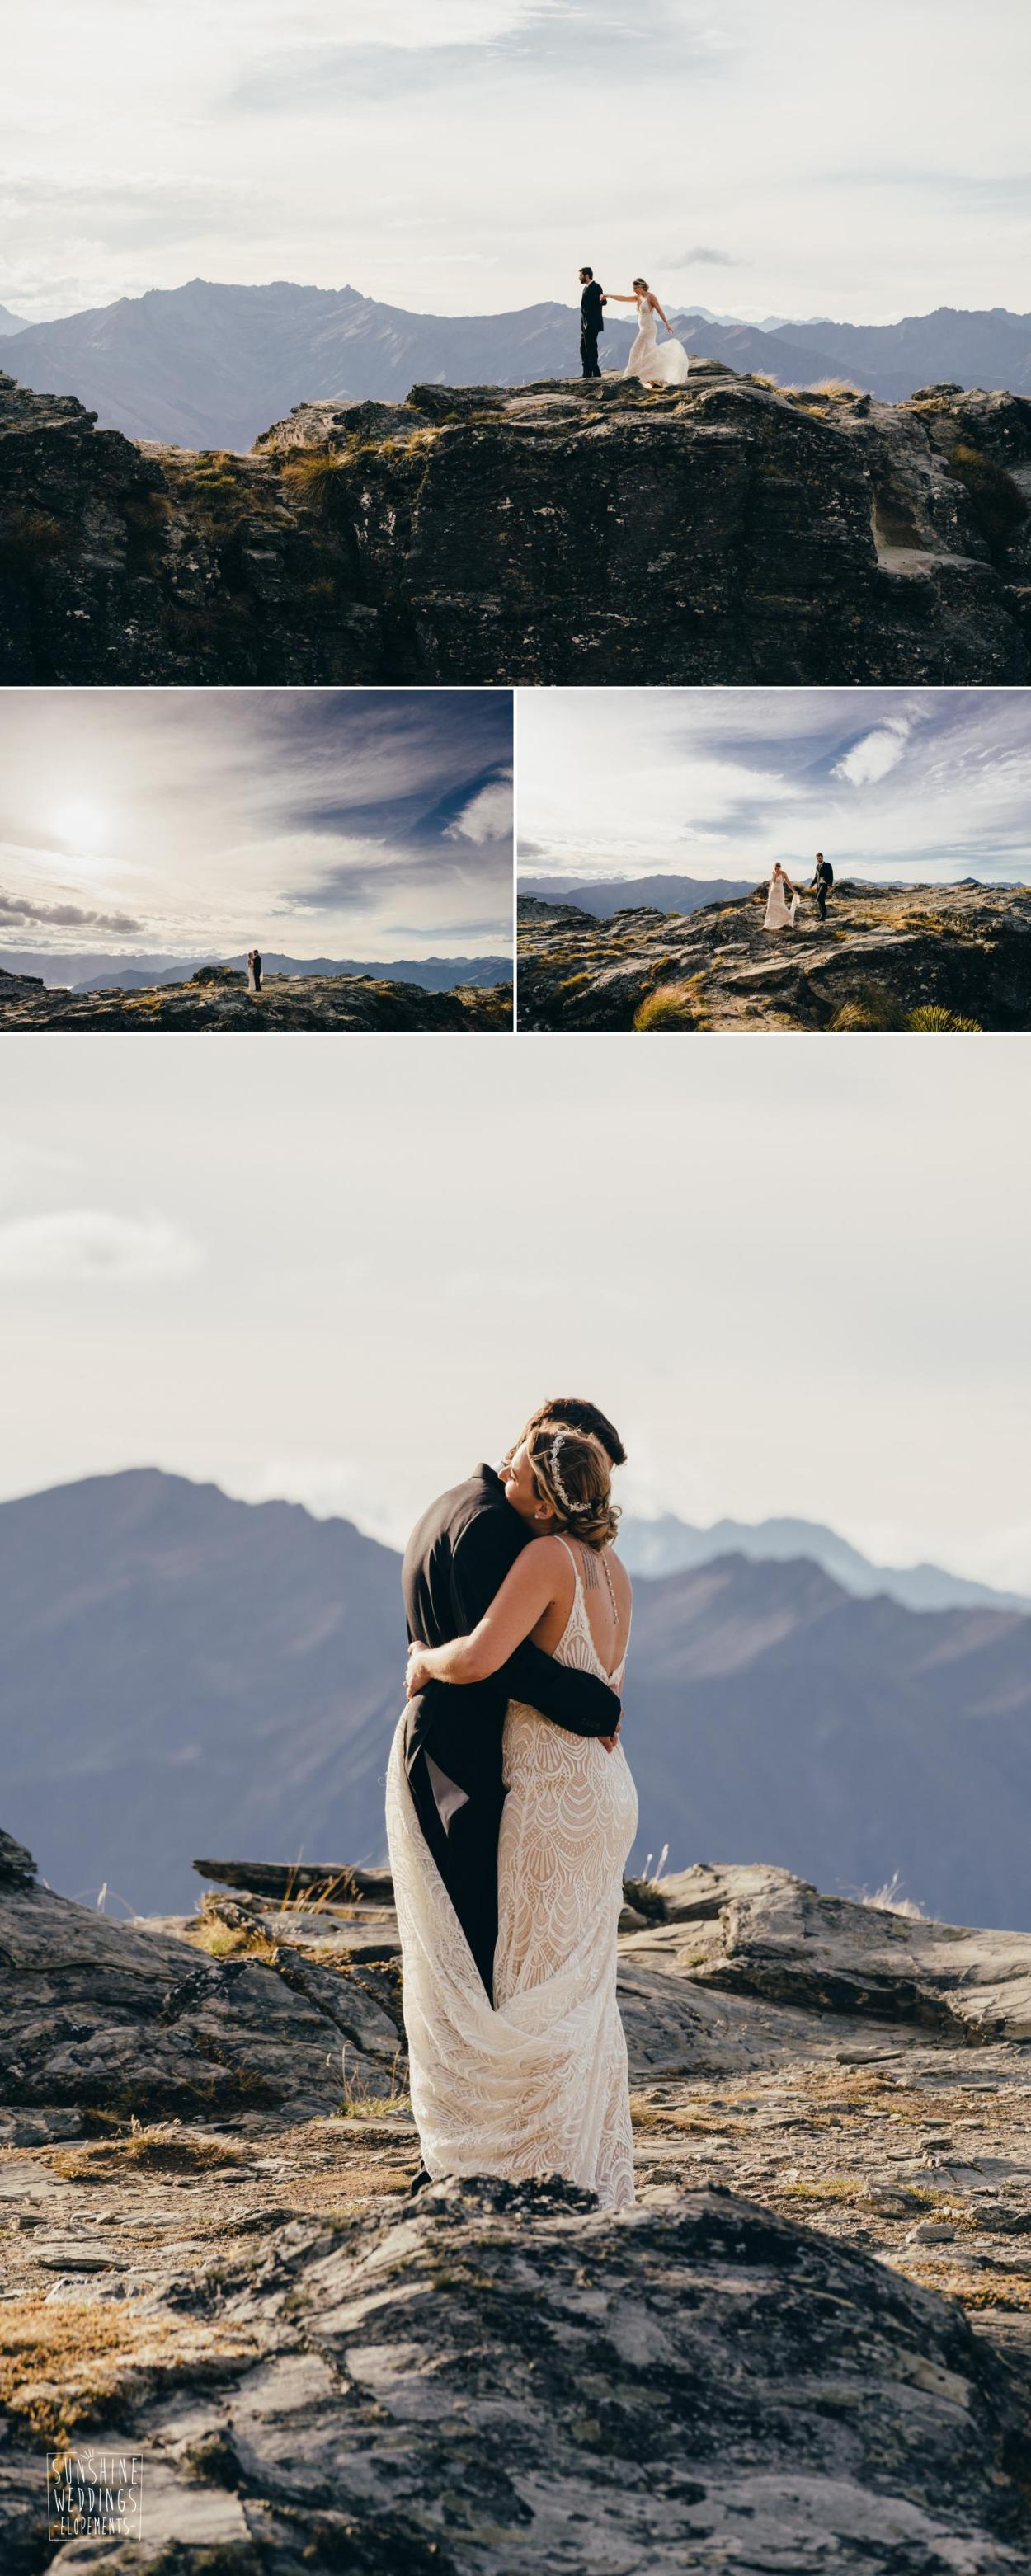 Sunset mountain wedding